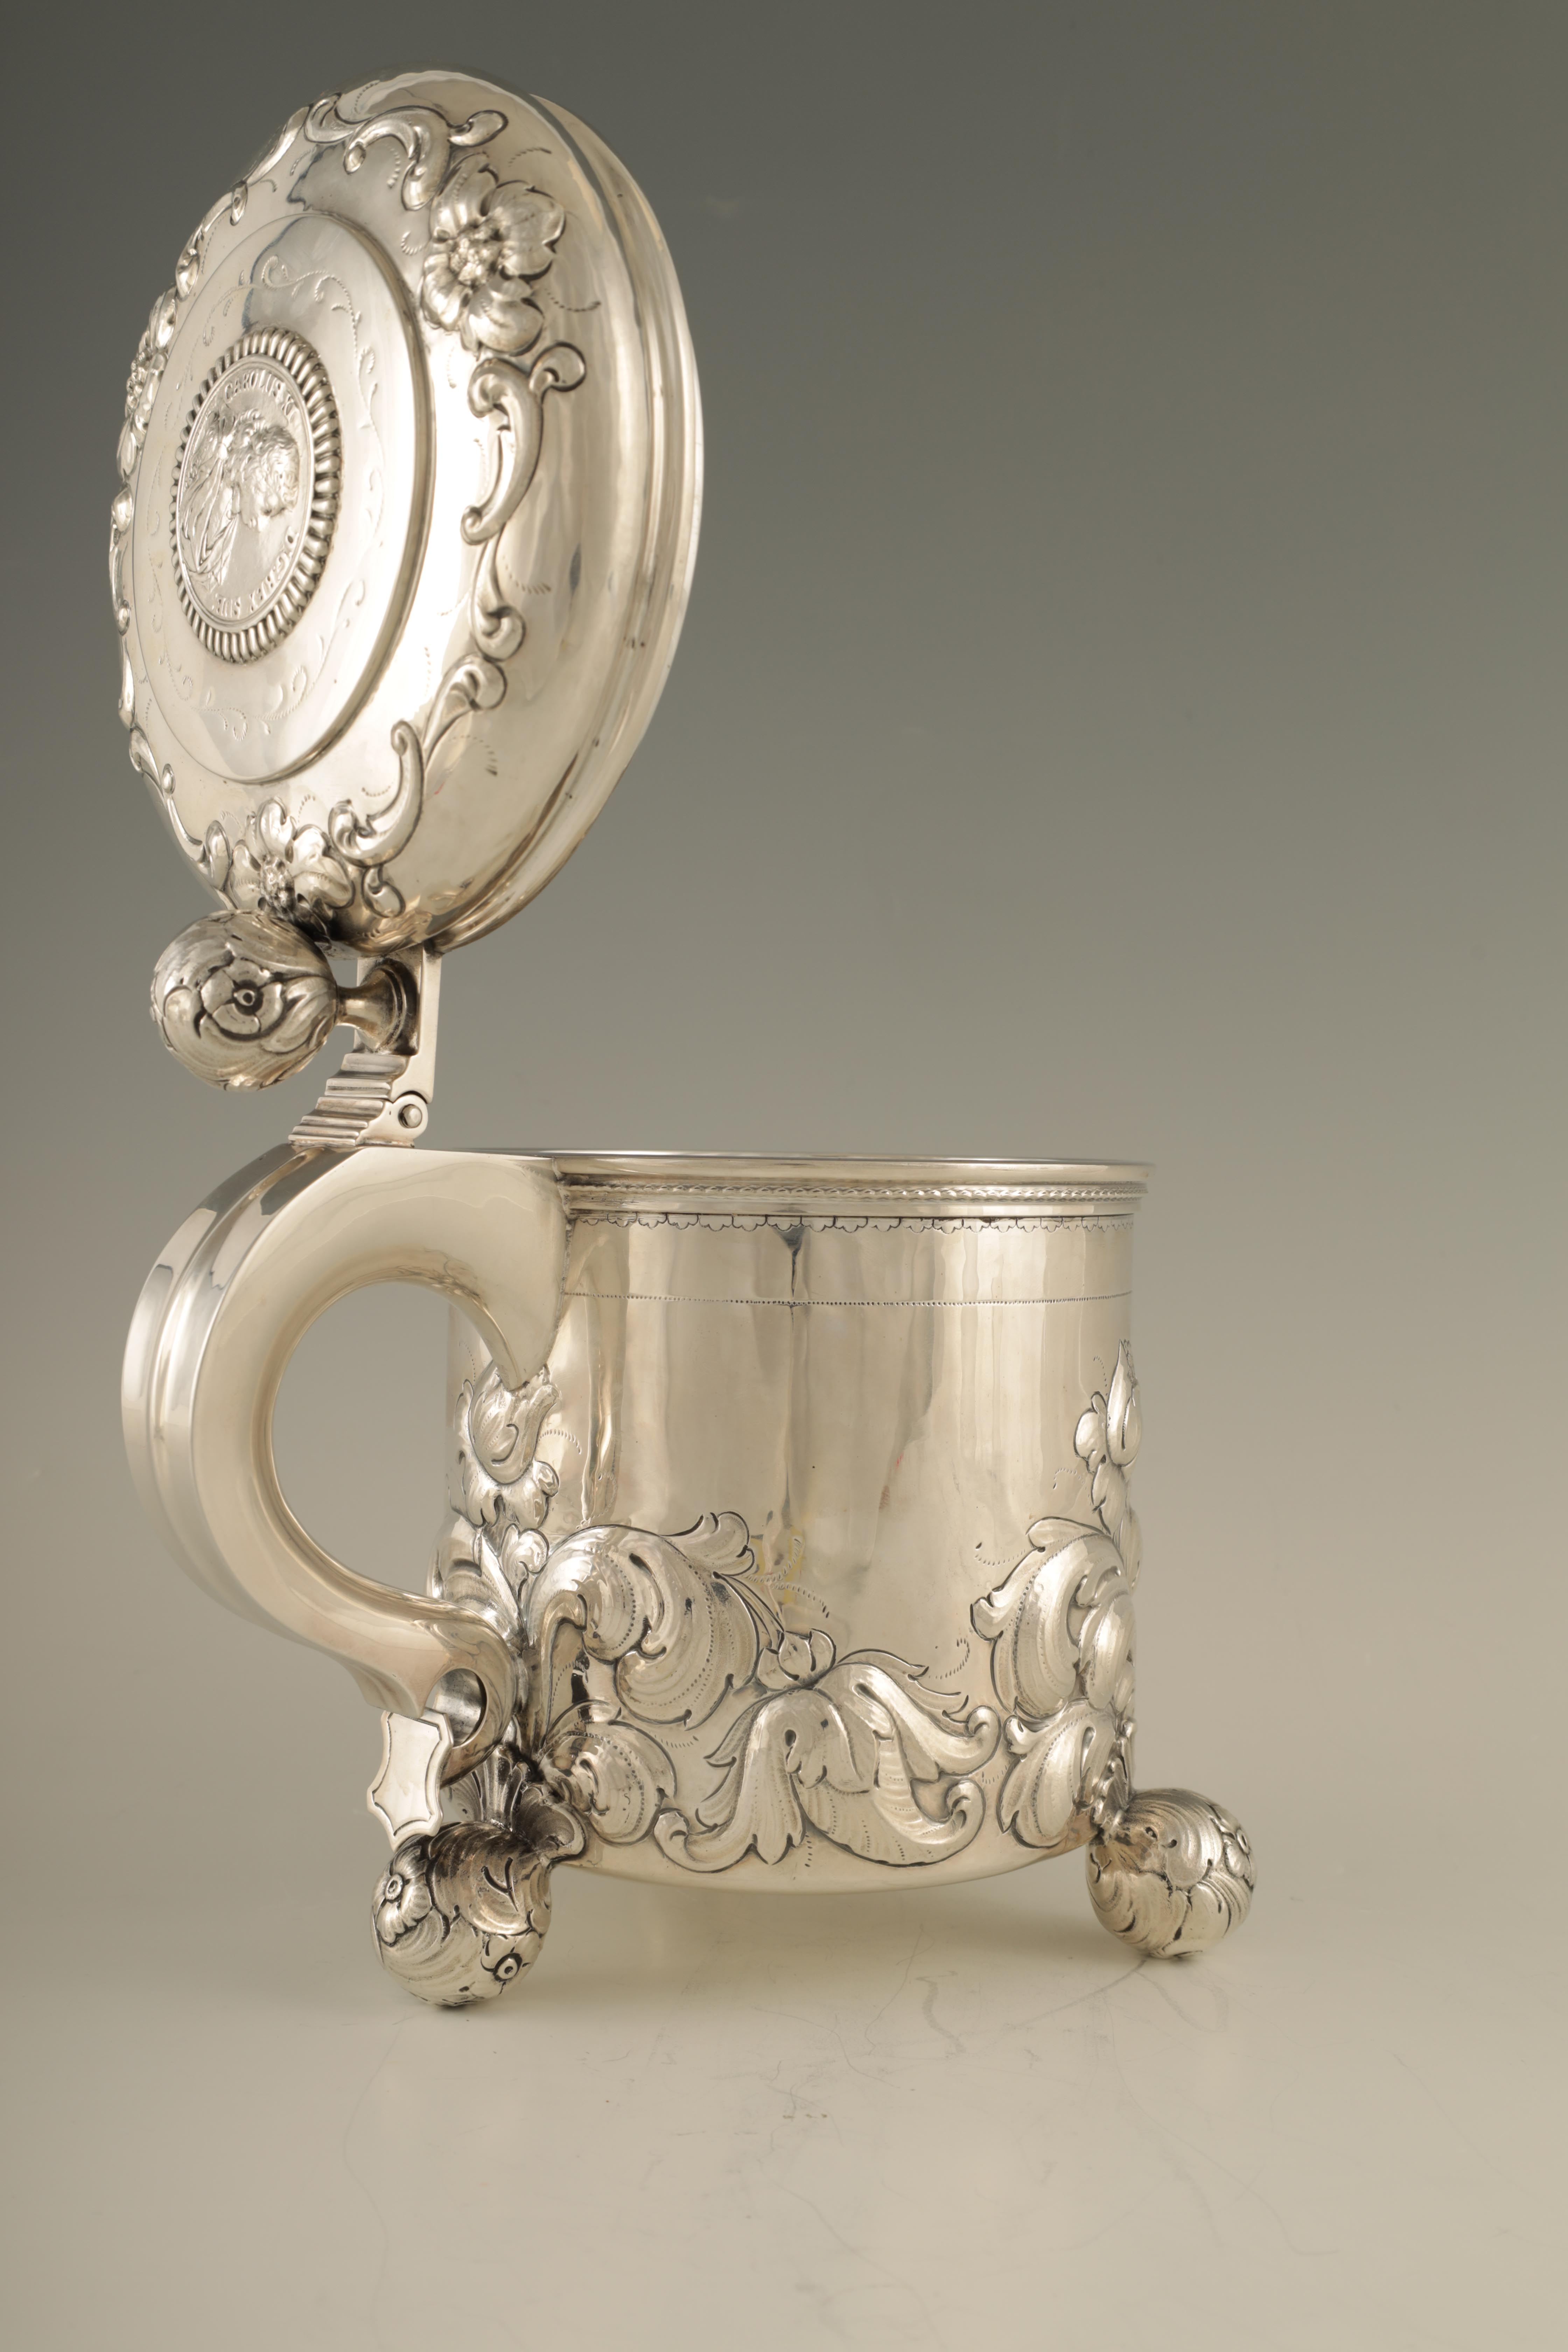 AN IMPRESSIVE EARLY 20TH CENTURY SWEDISH SILVER TANKARD with embossed ball finial to the hinged - Image 4 of 8